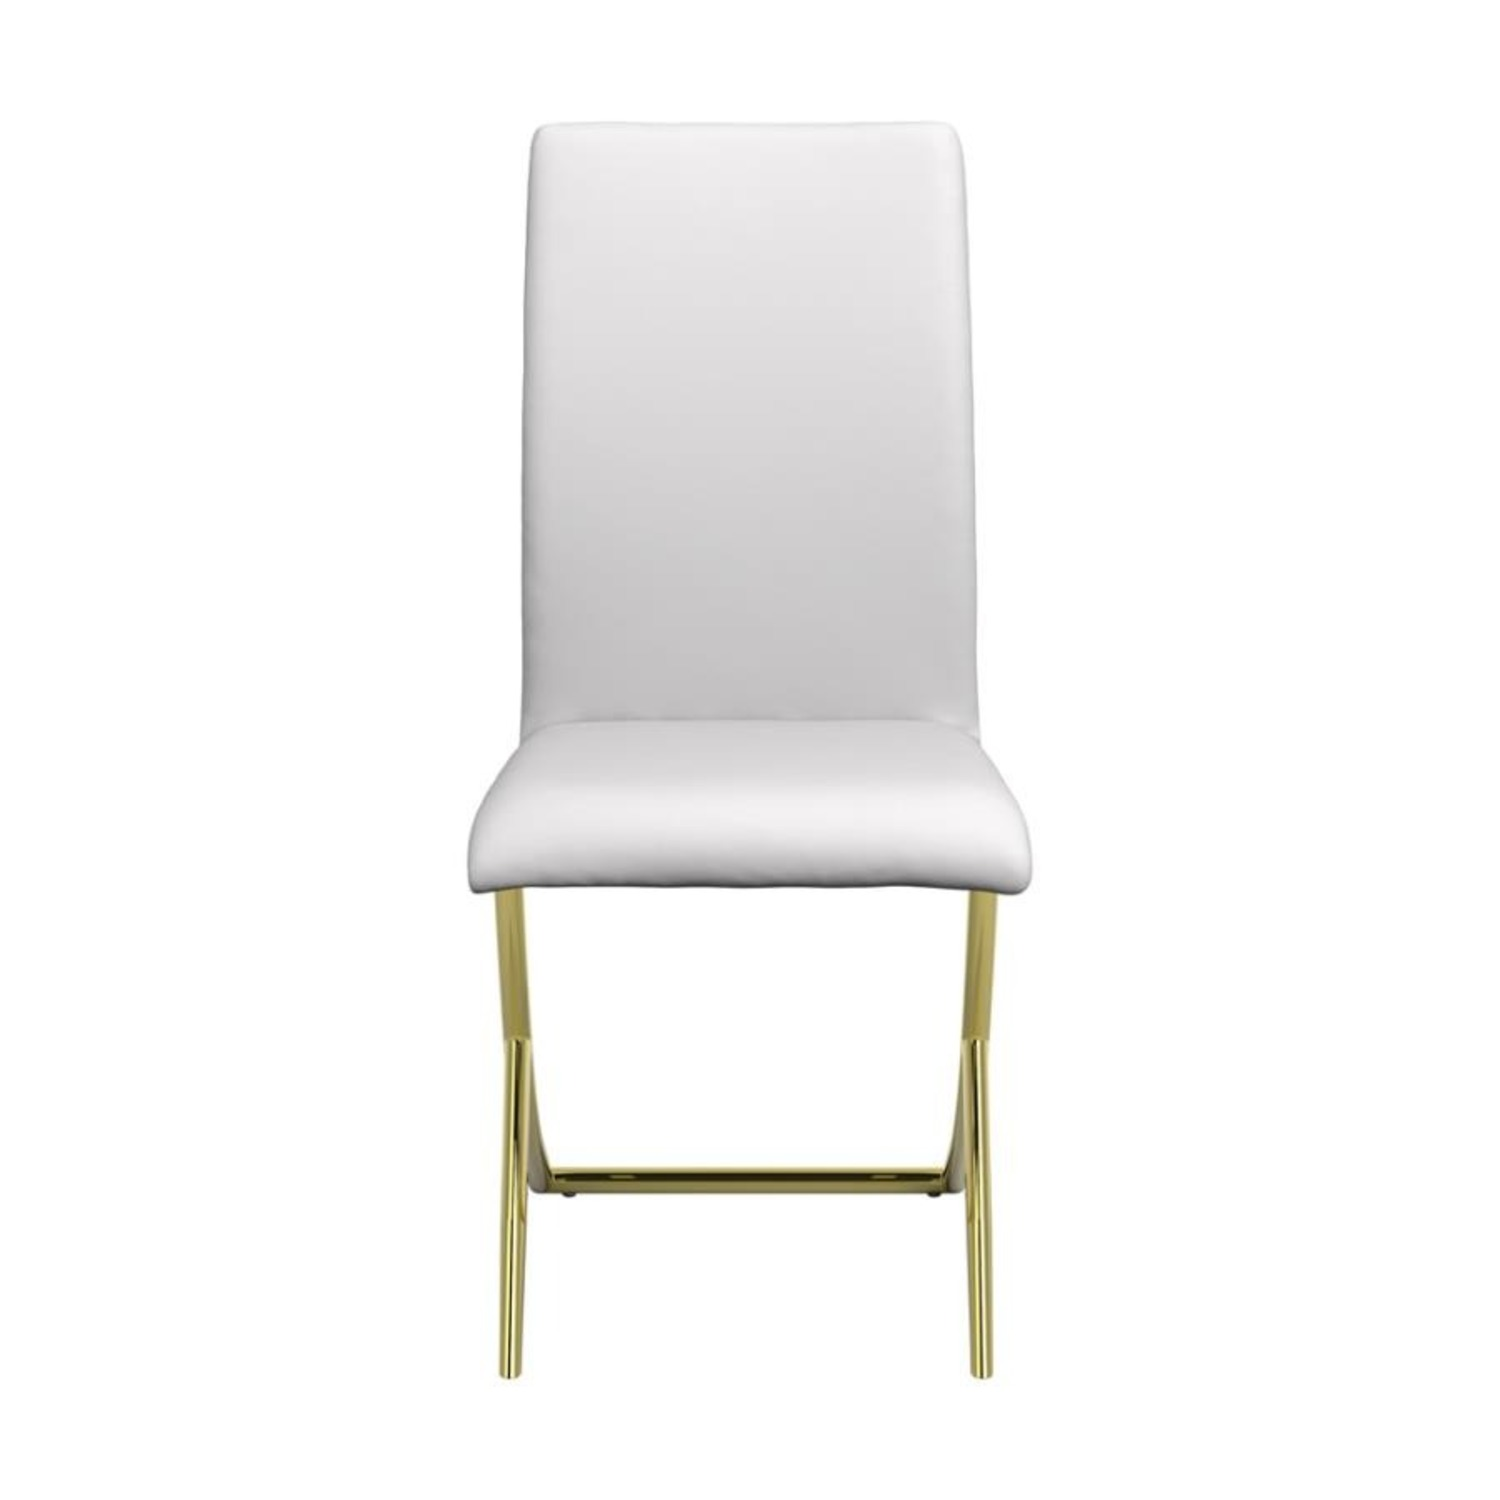 Side Chair In White W/ Crisscross Base Design - image-1